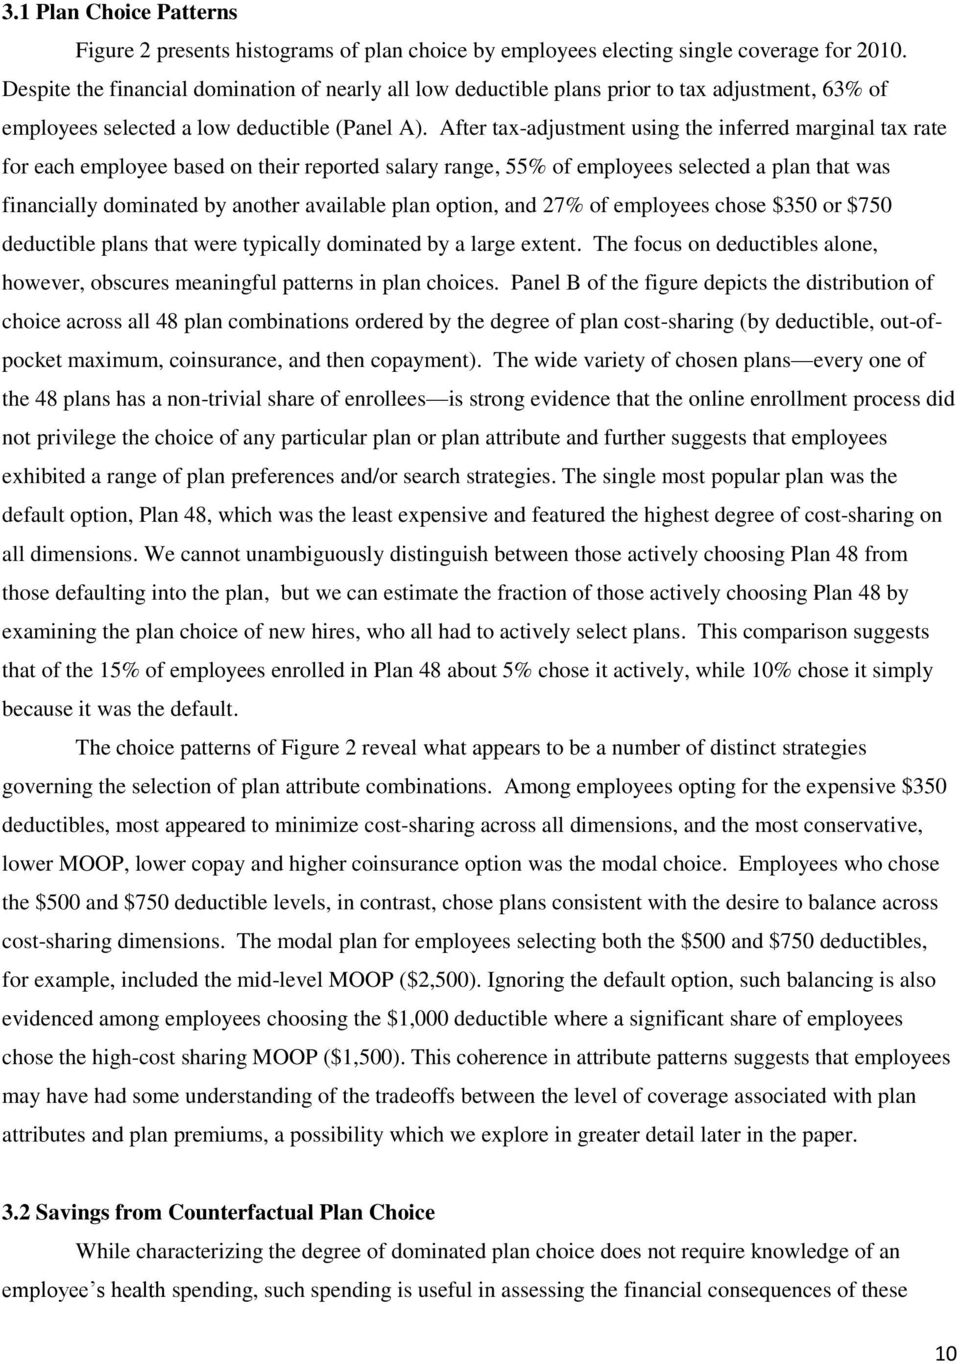 After tax-adjustment using the inferred marginal tax rate for each employee based on their reported salary range, 55% of employees selected a plan that was financially dominated by another available